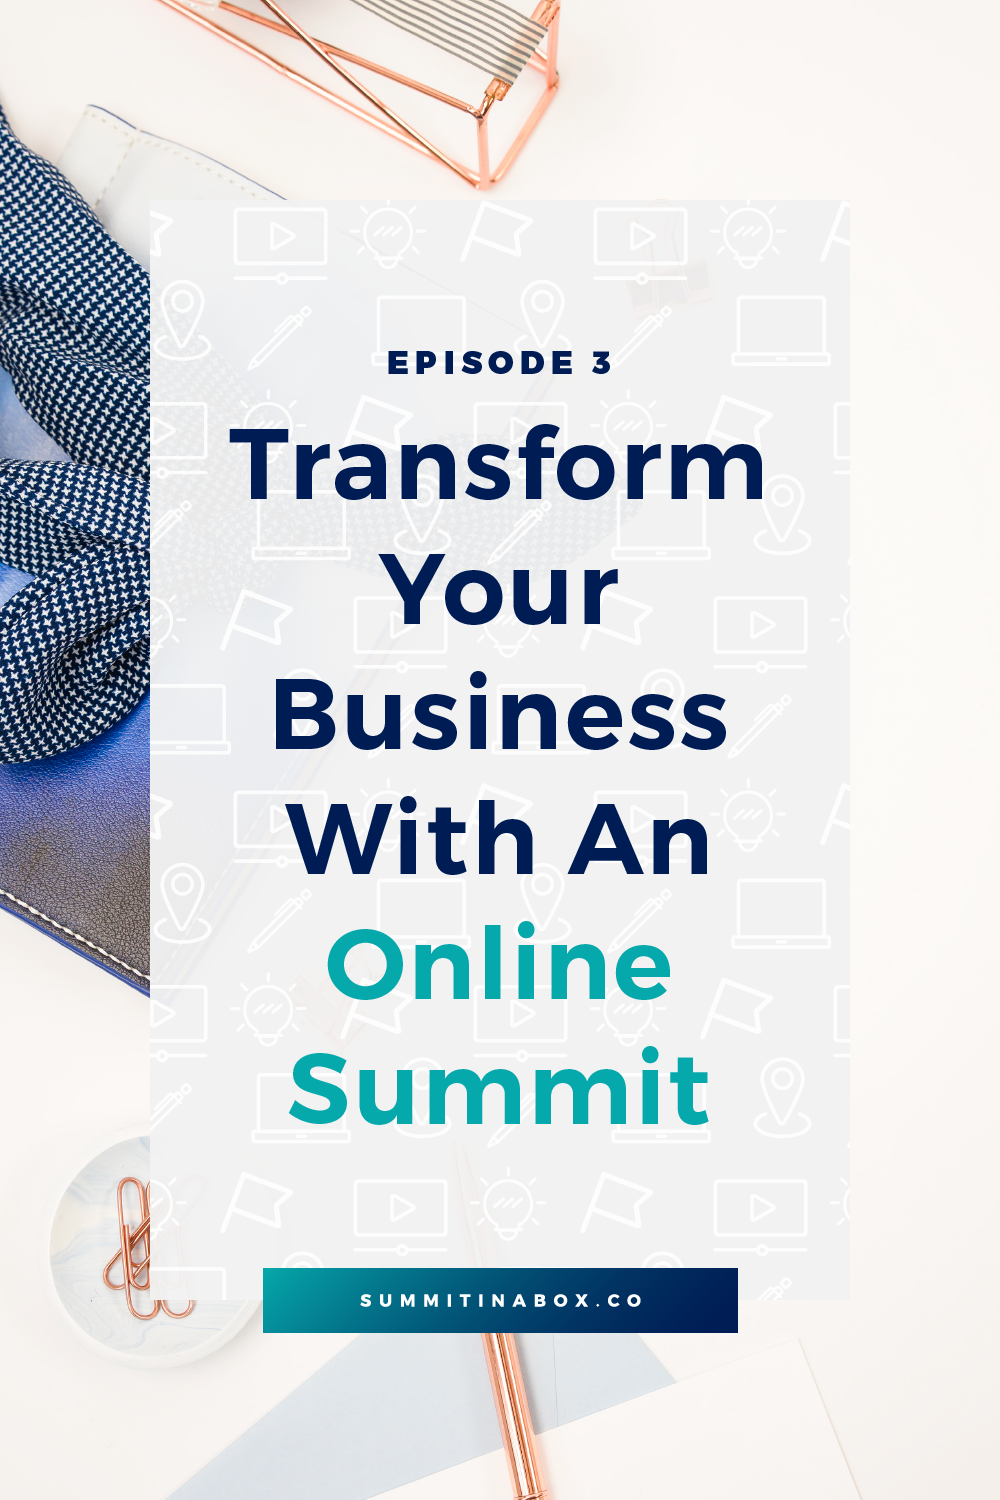 A virtual summit can grow your business in every aspect. From leads and revenue to visibility and industry connections. Let's get started!